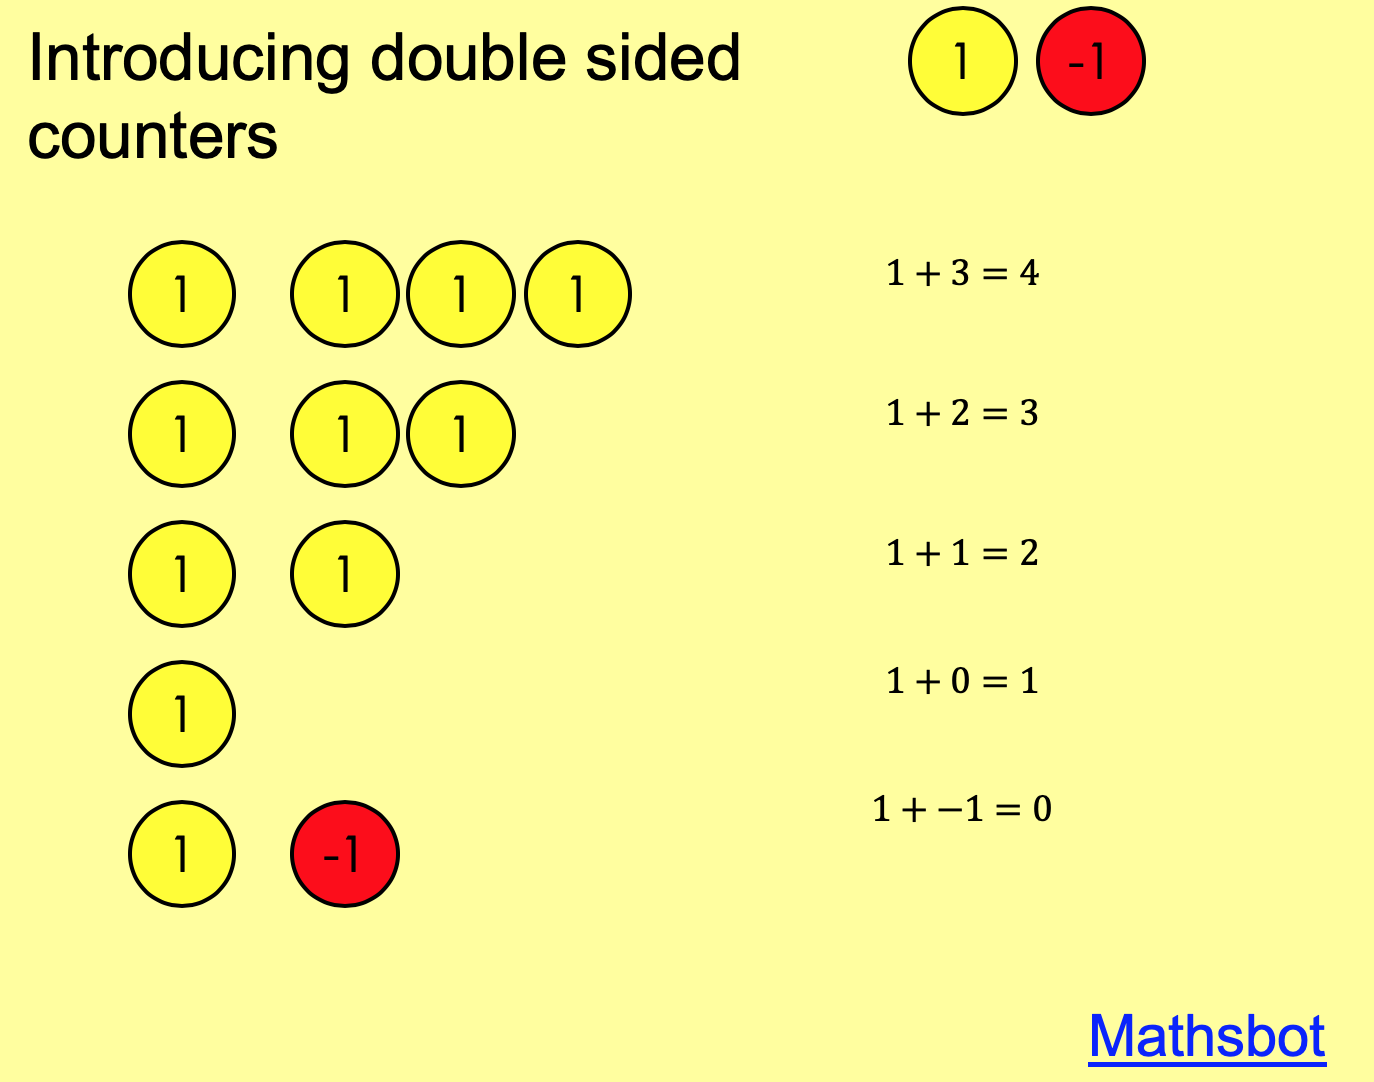 Introducing double sided counters